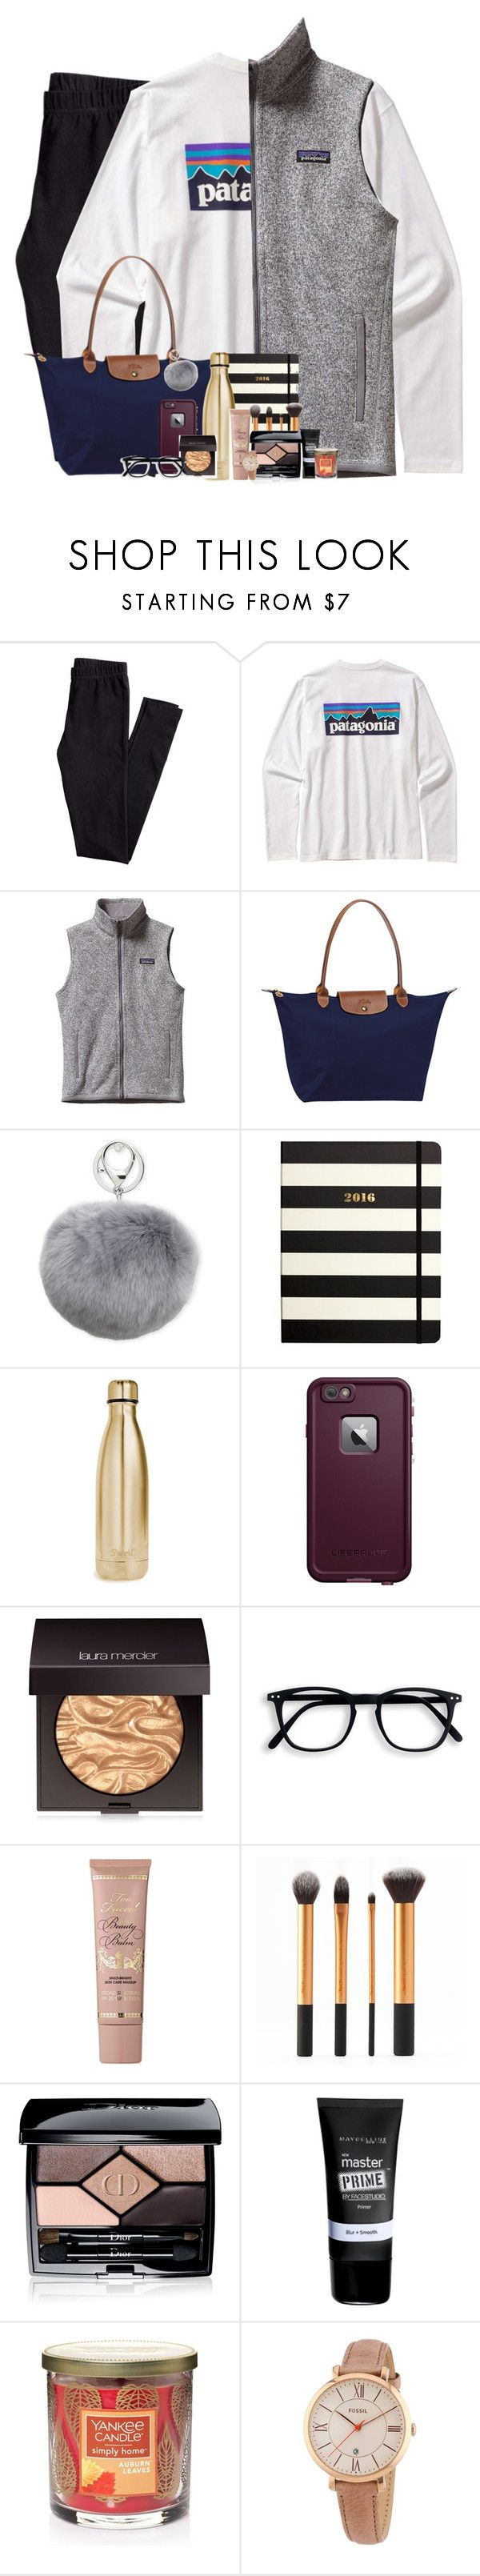 """Rtd for new contest!!!!!!"" by simplesouthernlife01 ❤ liked on Polyvore featuring H&M, Patagonia, Longchamp, Adrienne Landau, Kate Spade, S'well, LifeProof, Laura Mercier, Too Faced Cosmetics and Christian Dior"